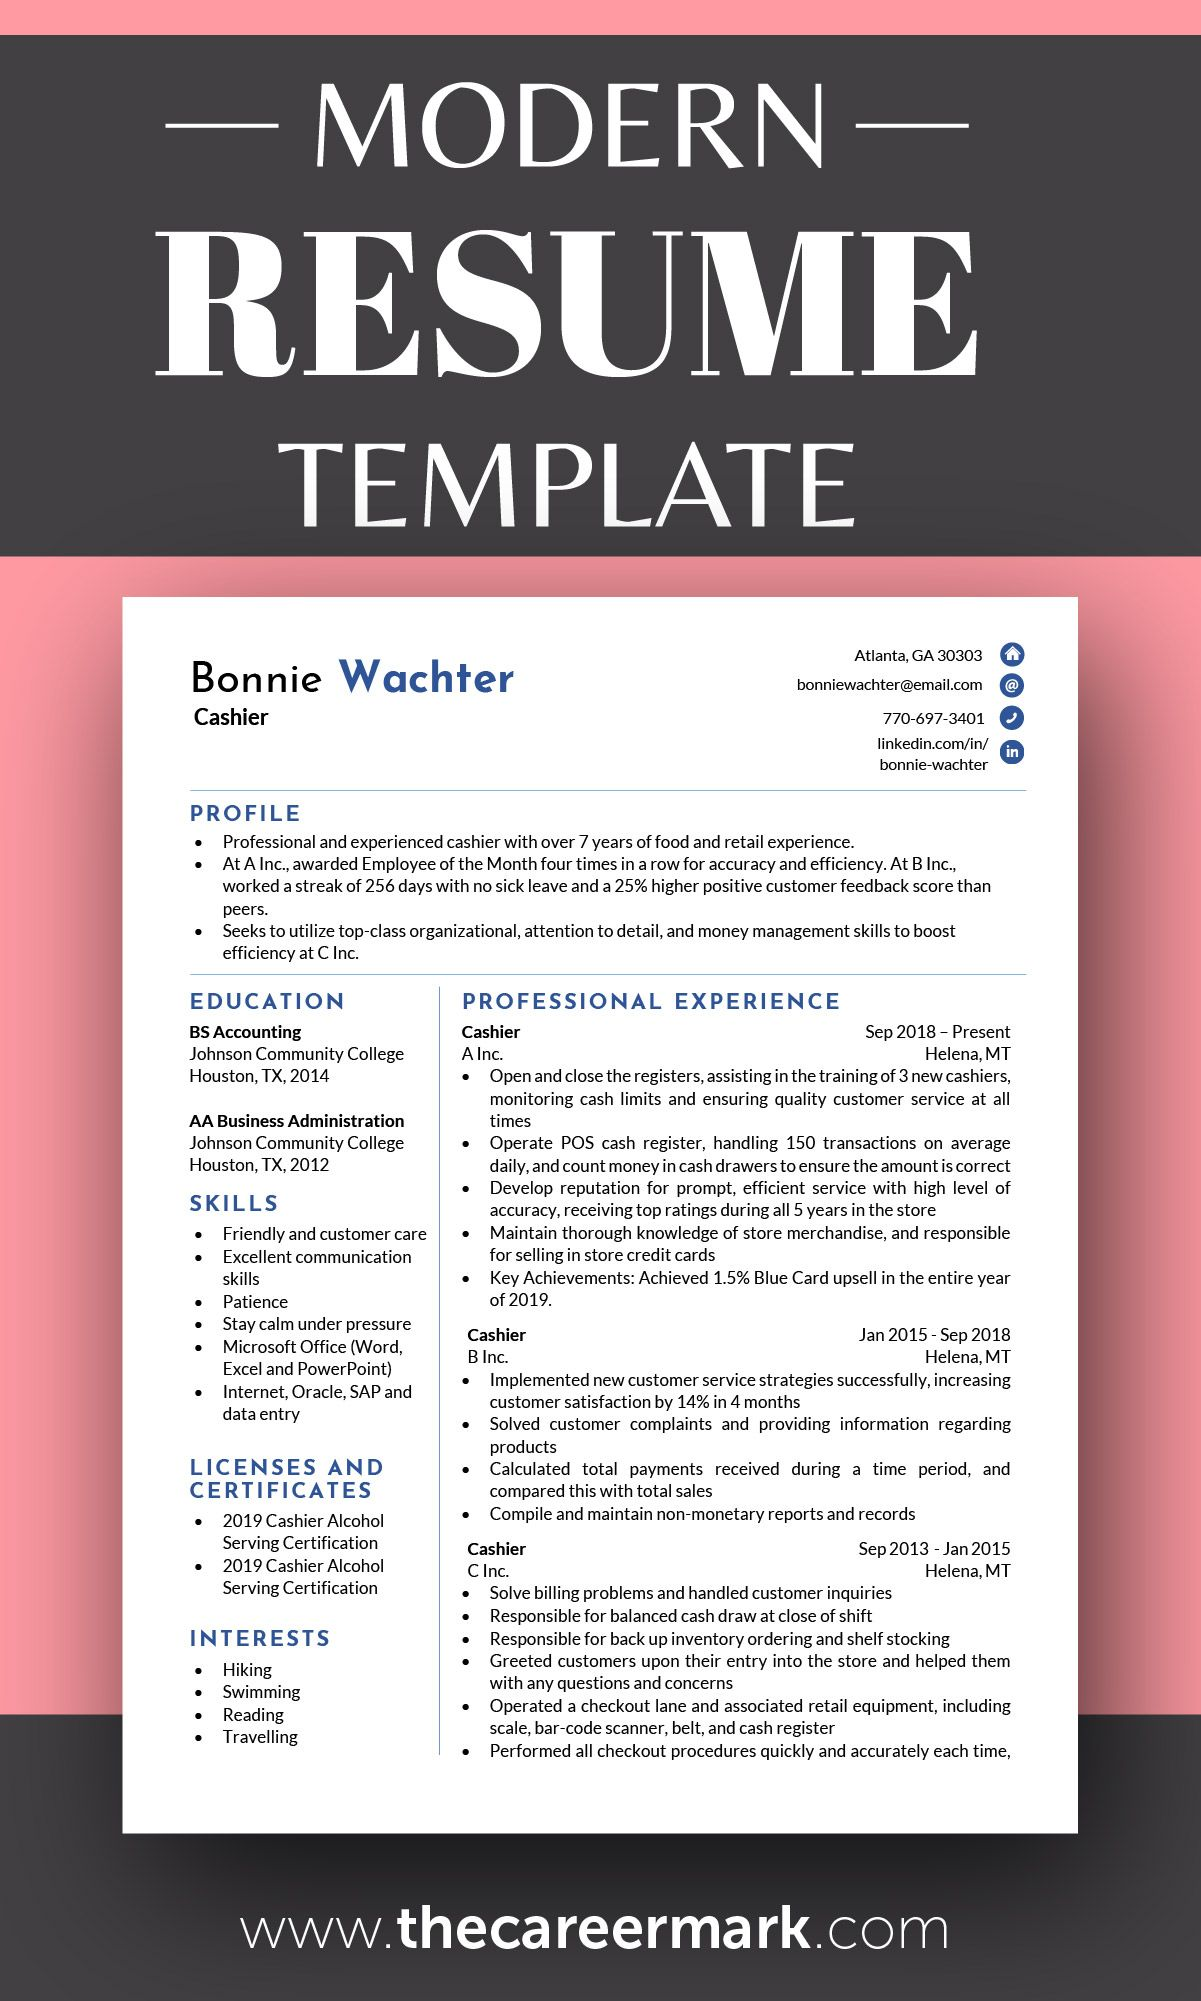 Modern Resume Template for 2020 in 2020 Modern resume